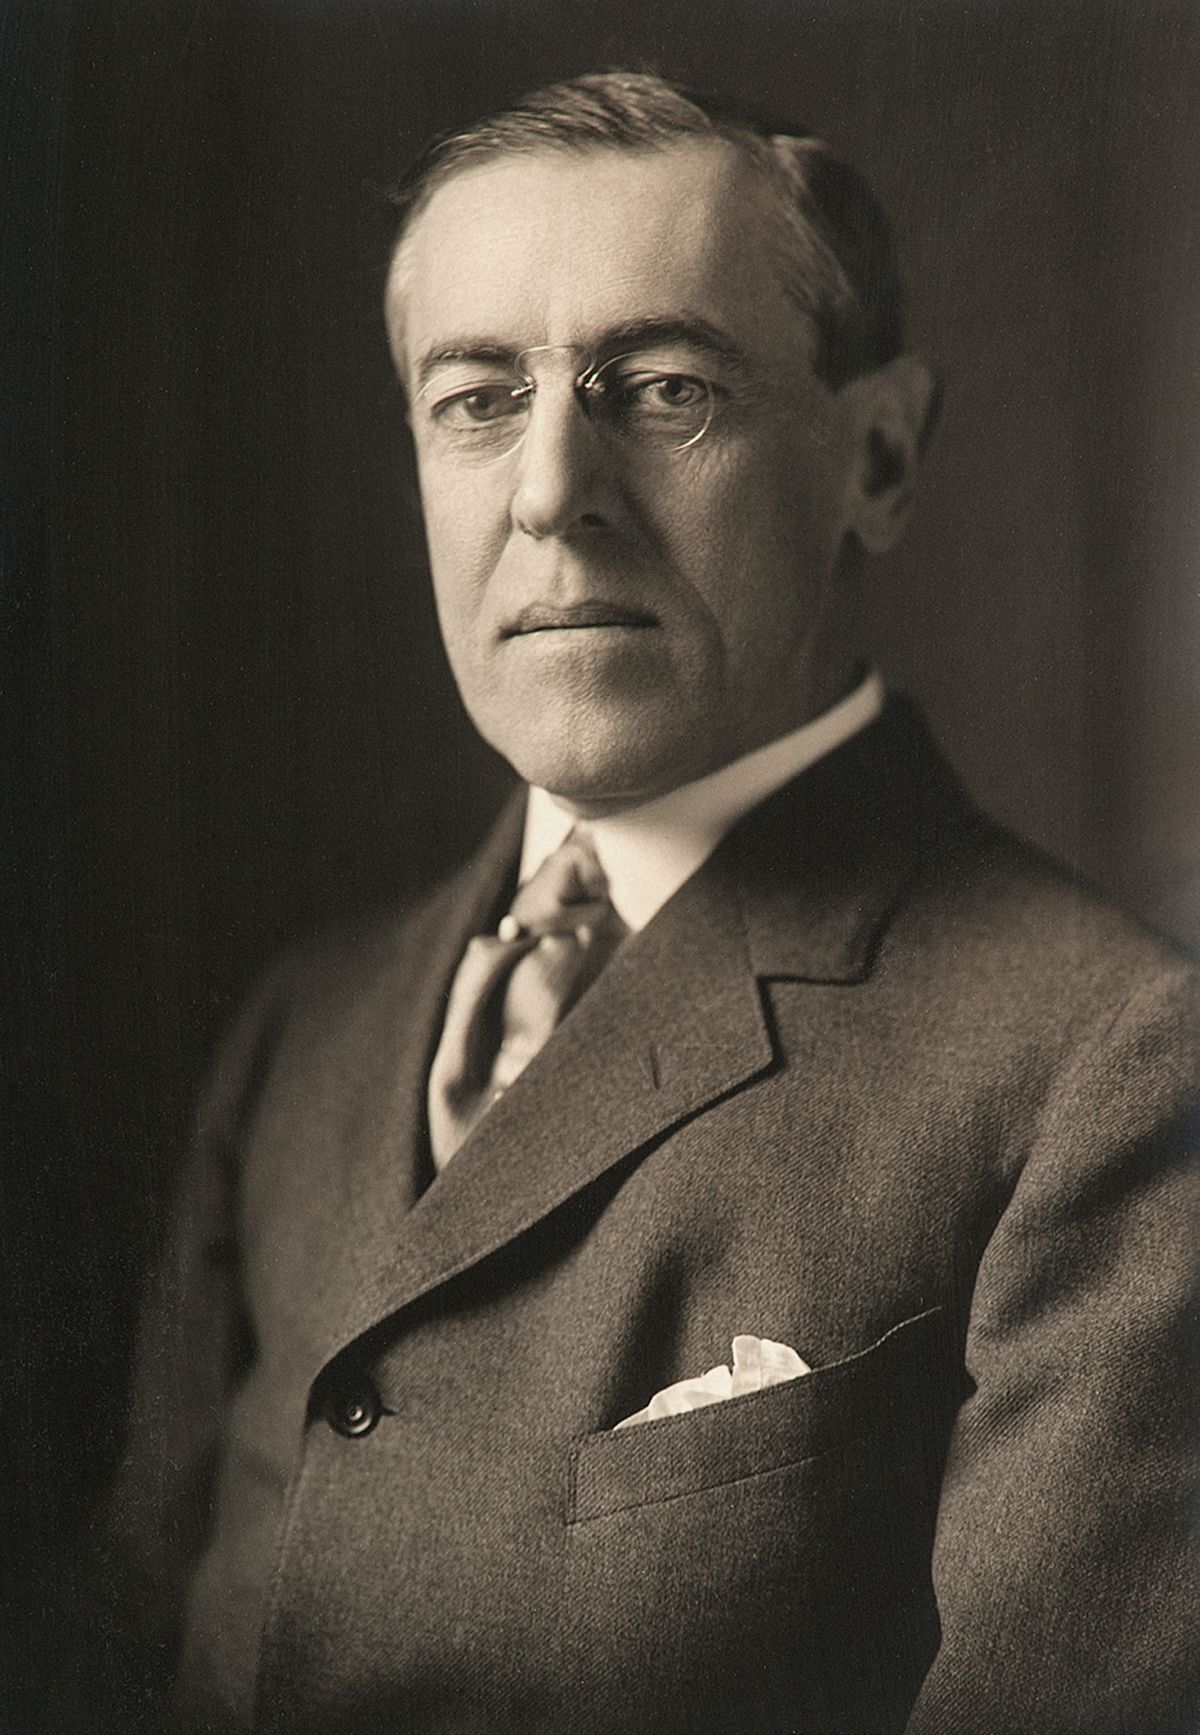 In 1913 woodrow wilson broke with a custom dating back to jeffersons day when he 9